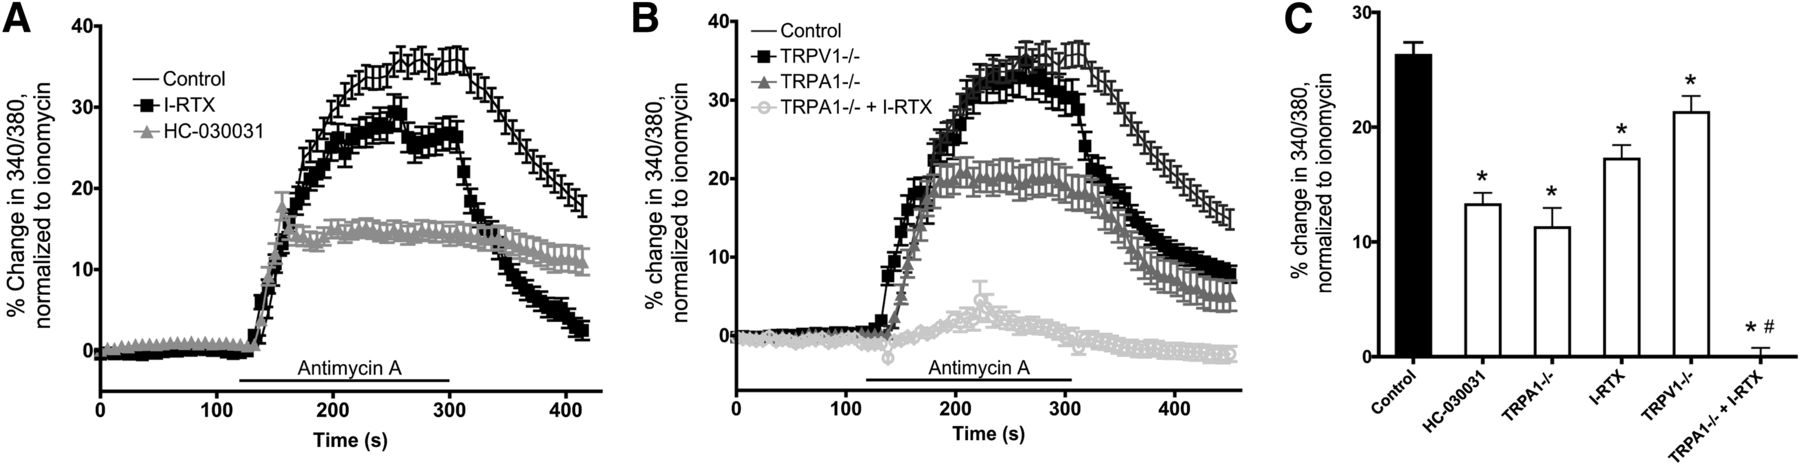 Sensory Nerve Terminal Mitochondrial Dysfunction Activates Airway